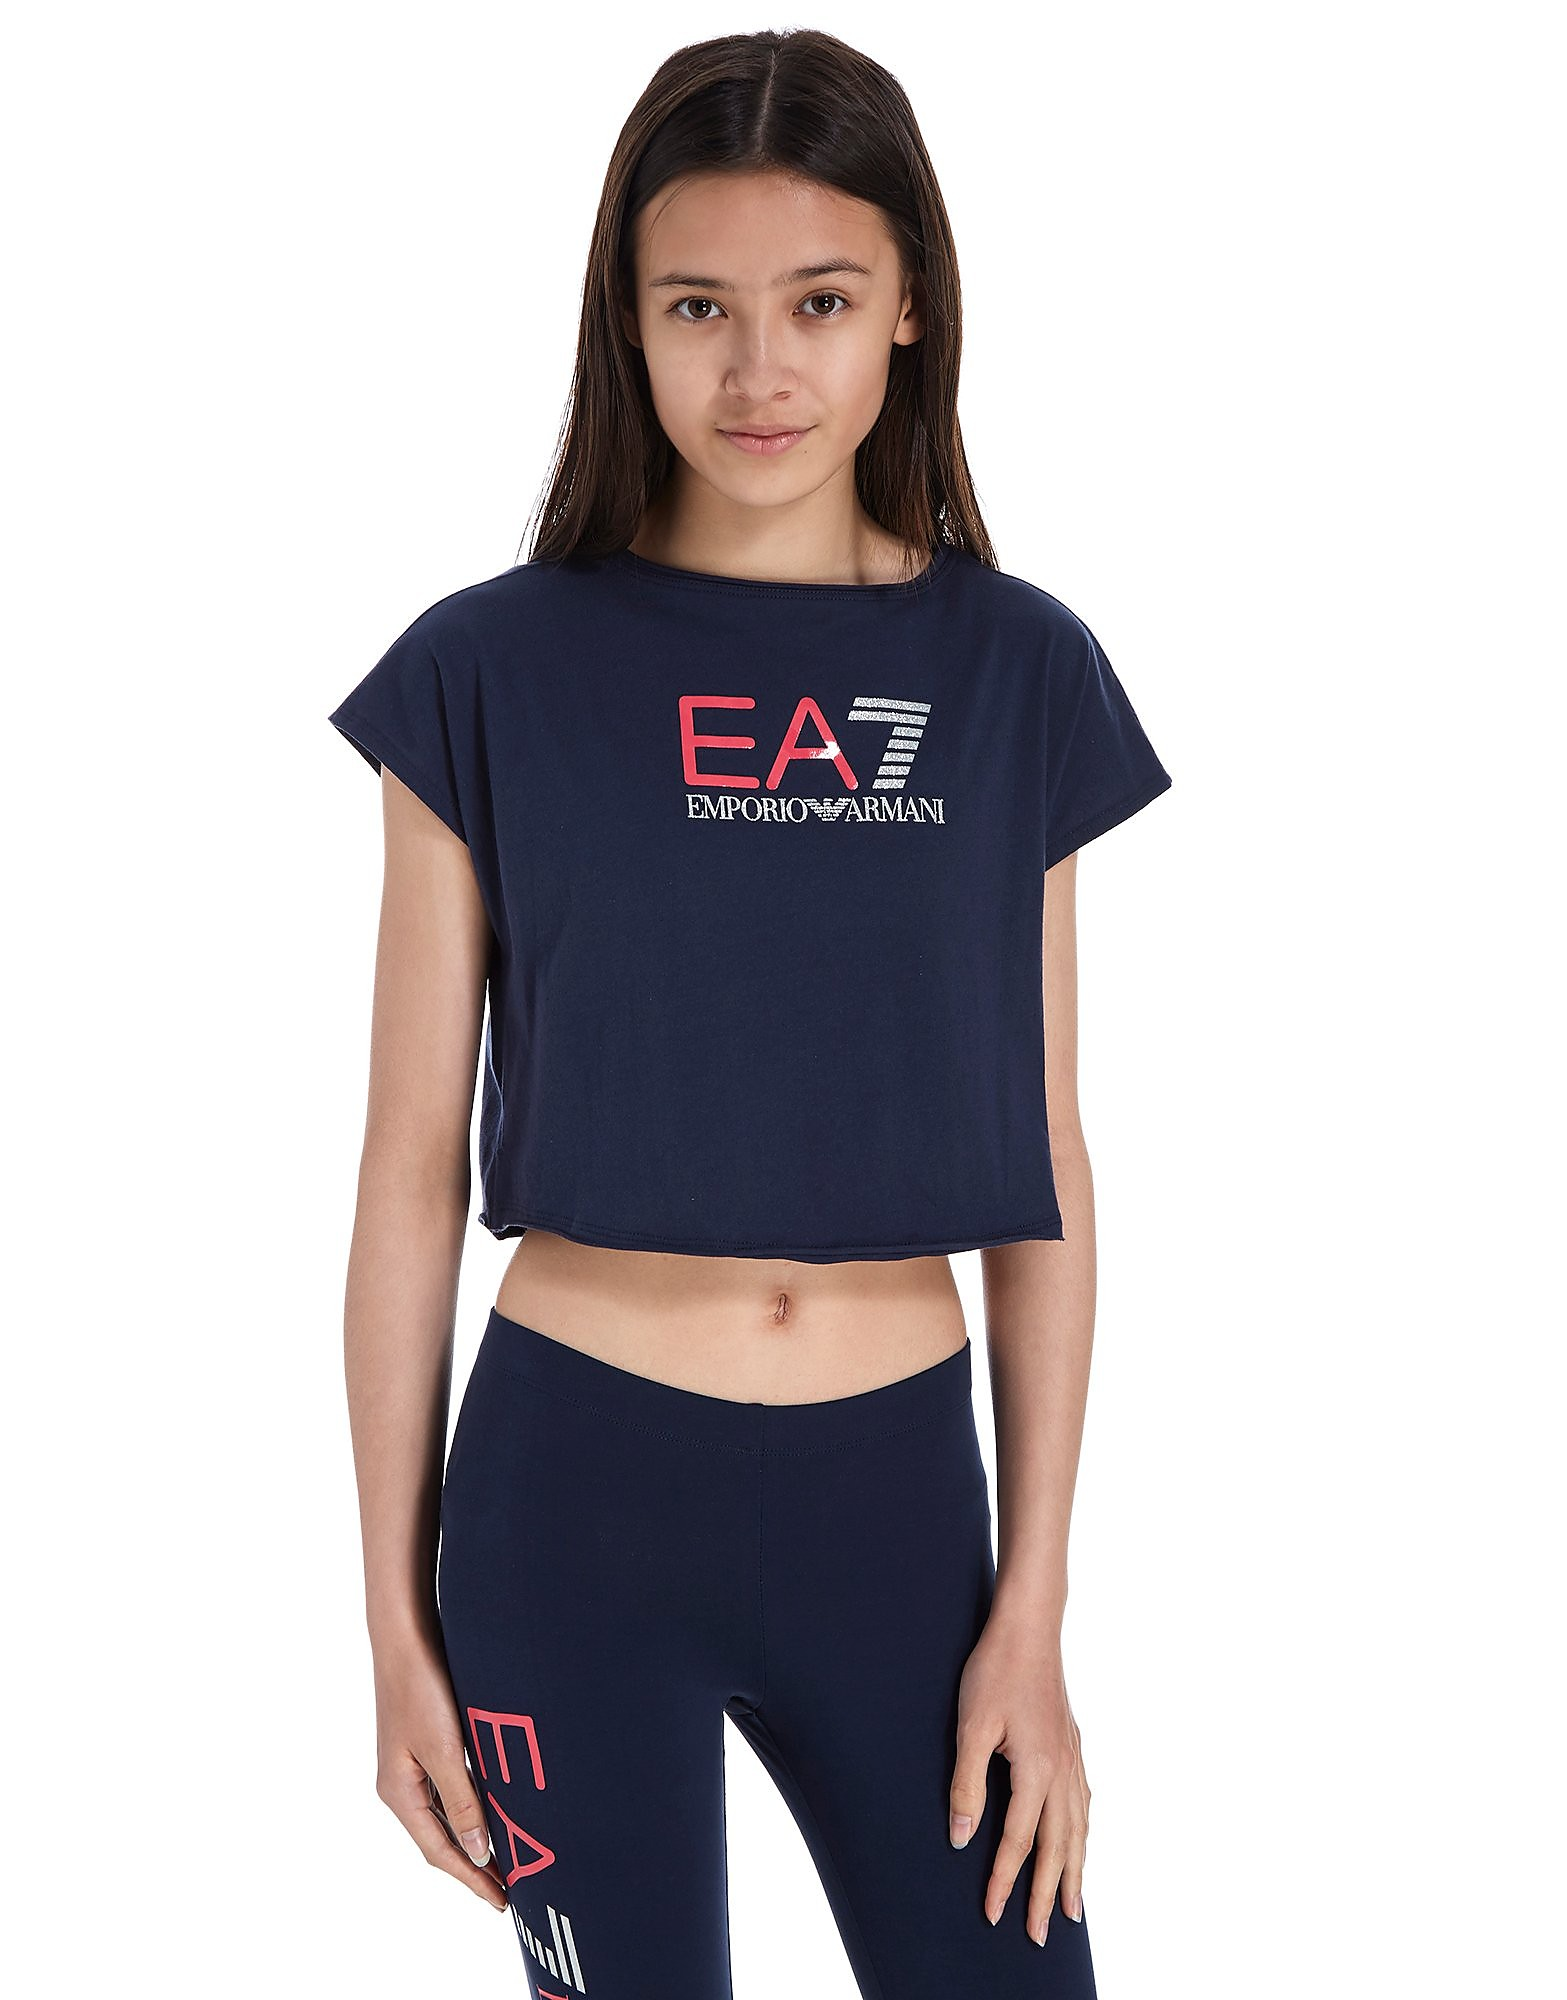 Emporio Armani EA7 Girls' Crop T-Shirt Junior